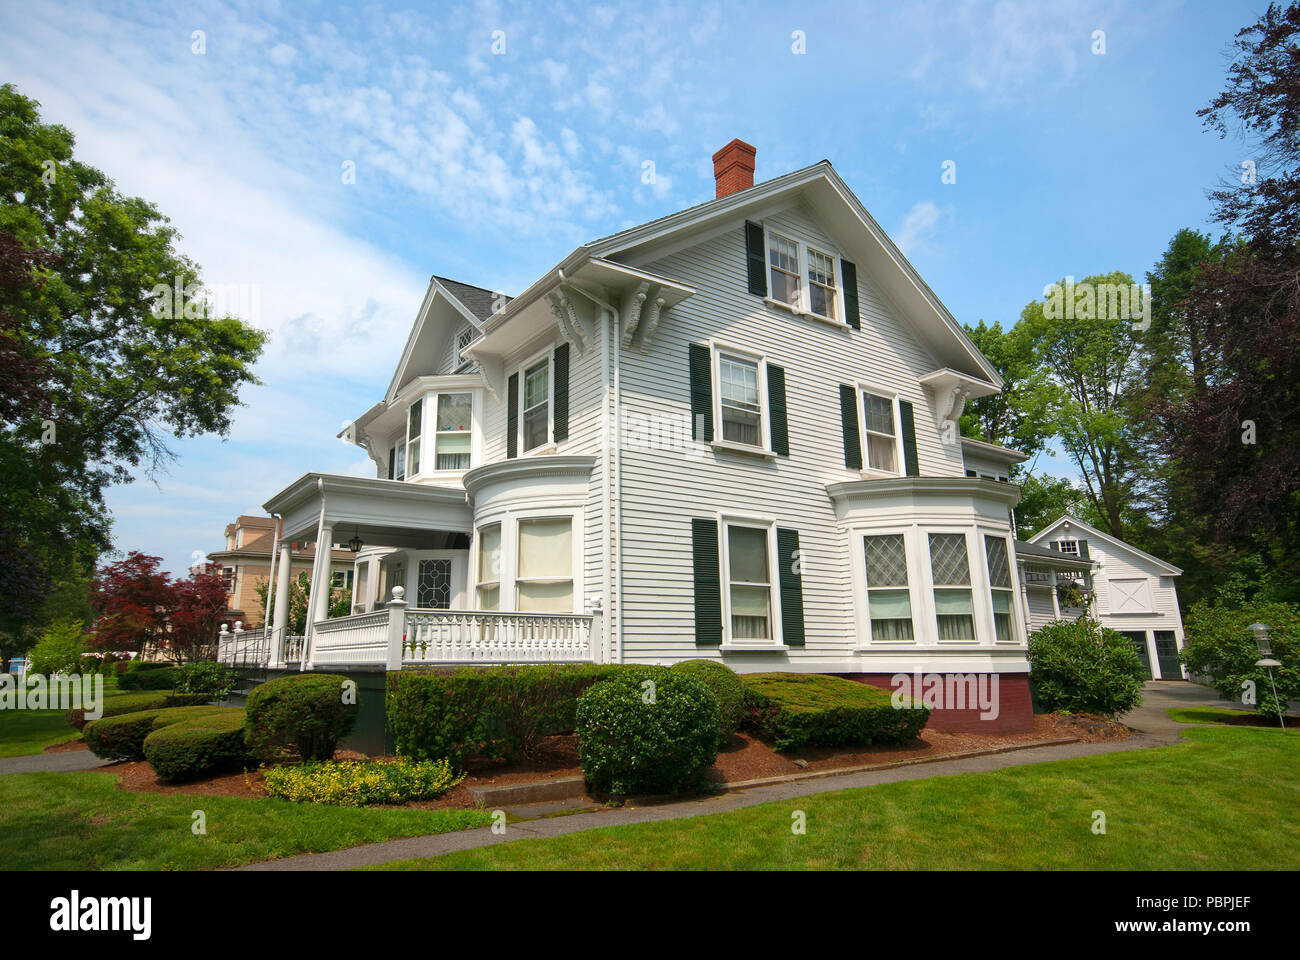 Stately house in Lexington, Middlesex County, Massachusetts, USA - Stock Image